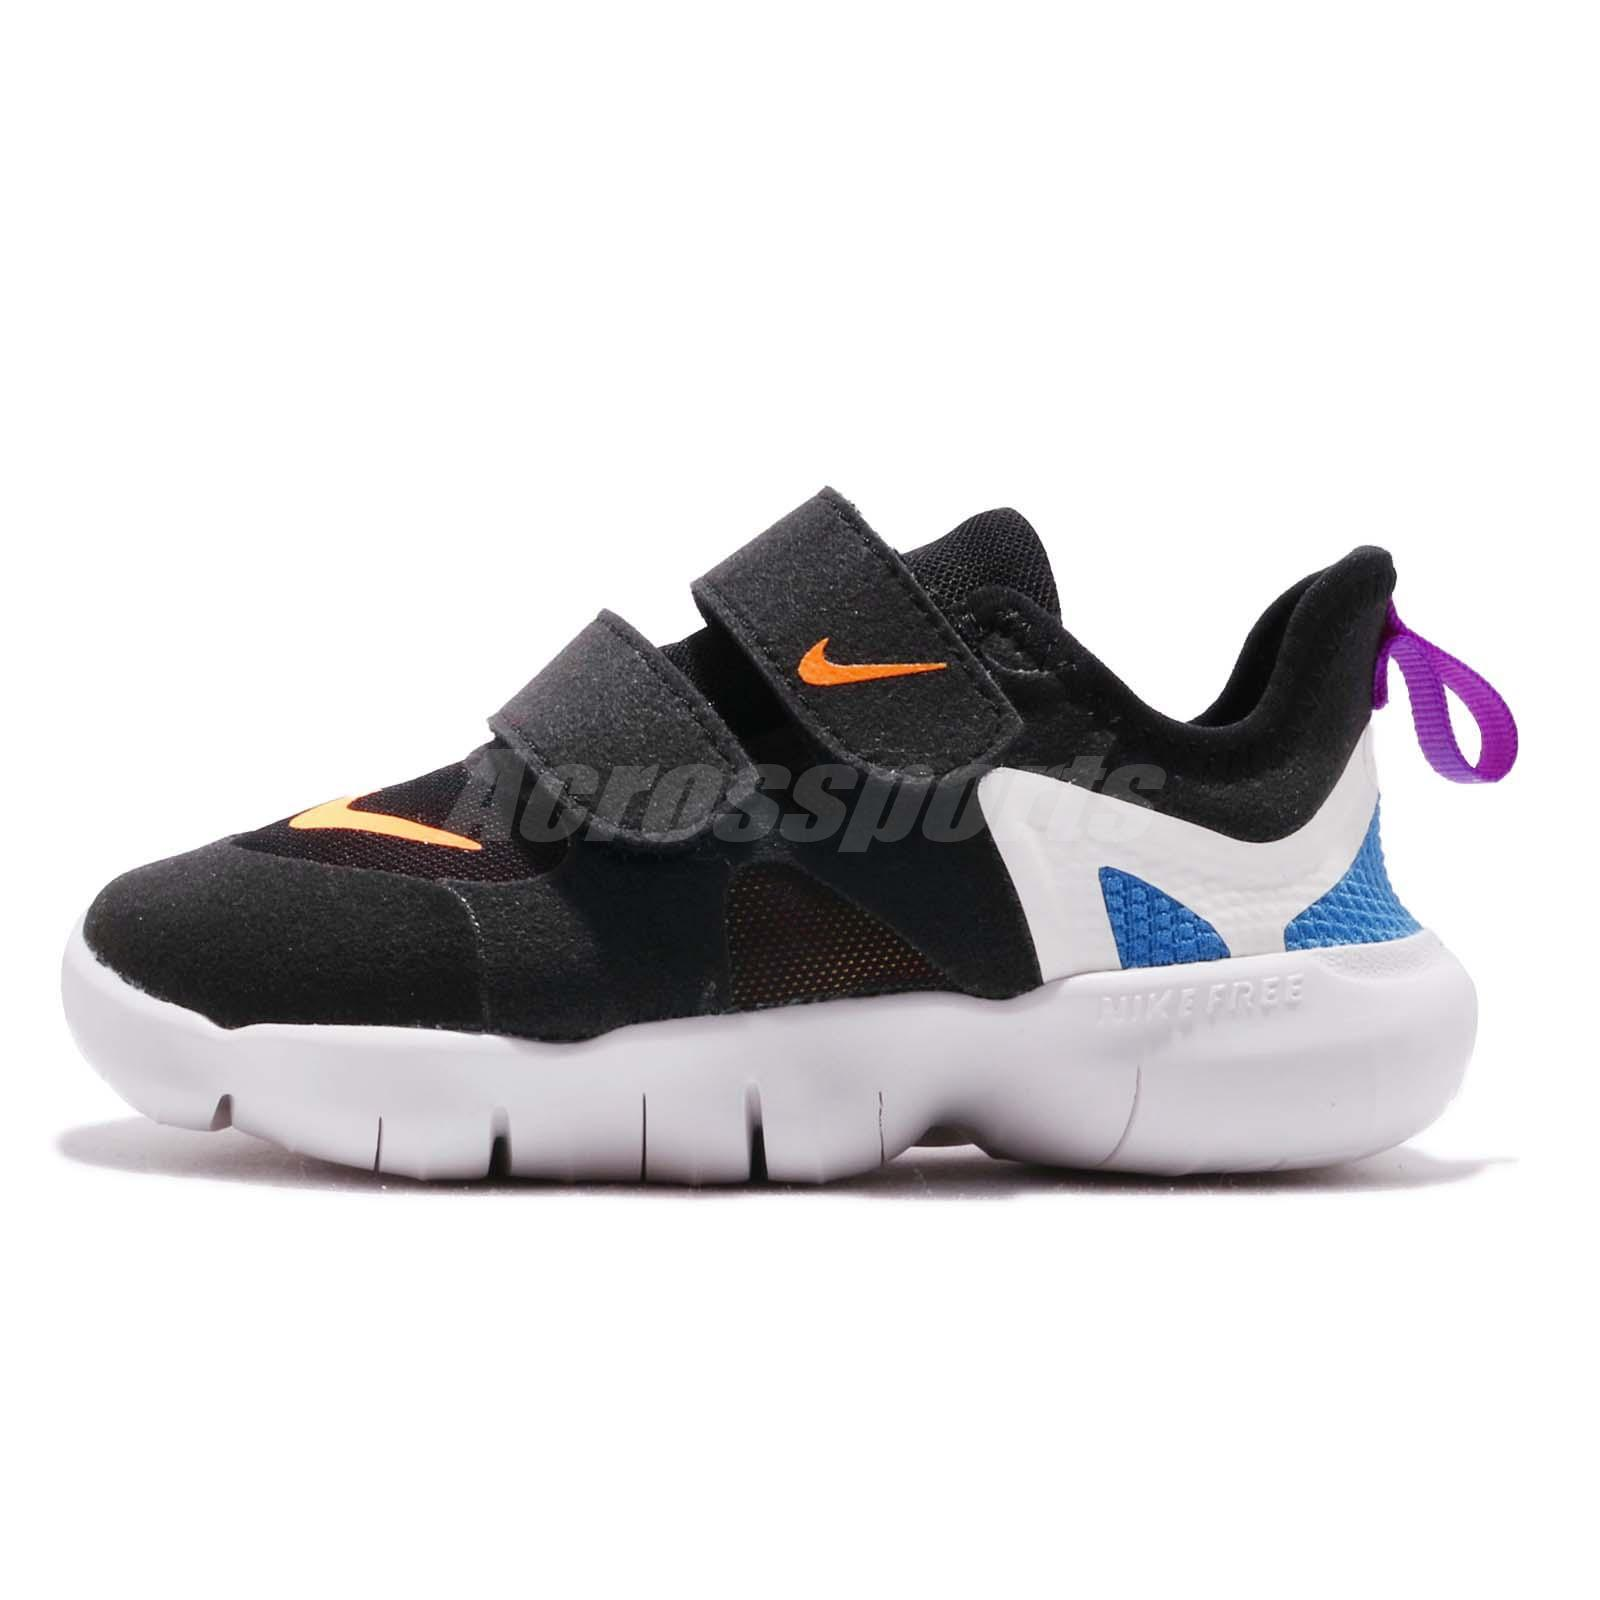 best service 42be5 08b4e Details about Nike Free RN 5.0 TDV Black White Orange Blue Toddler Infant  Baby Shoe AR4146-003